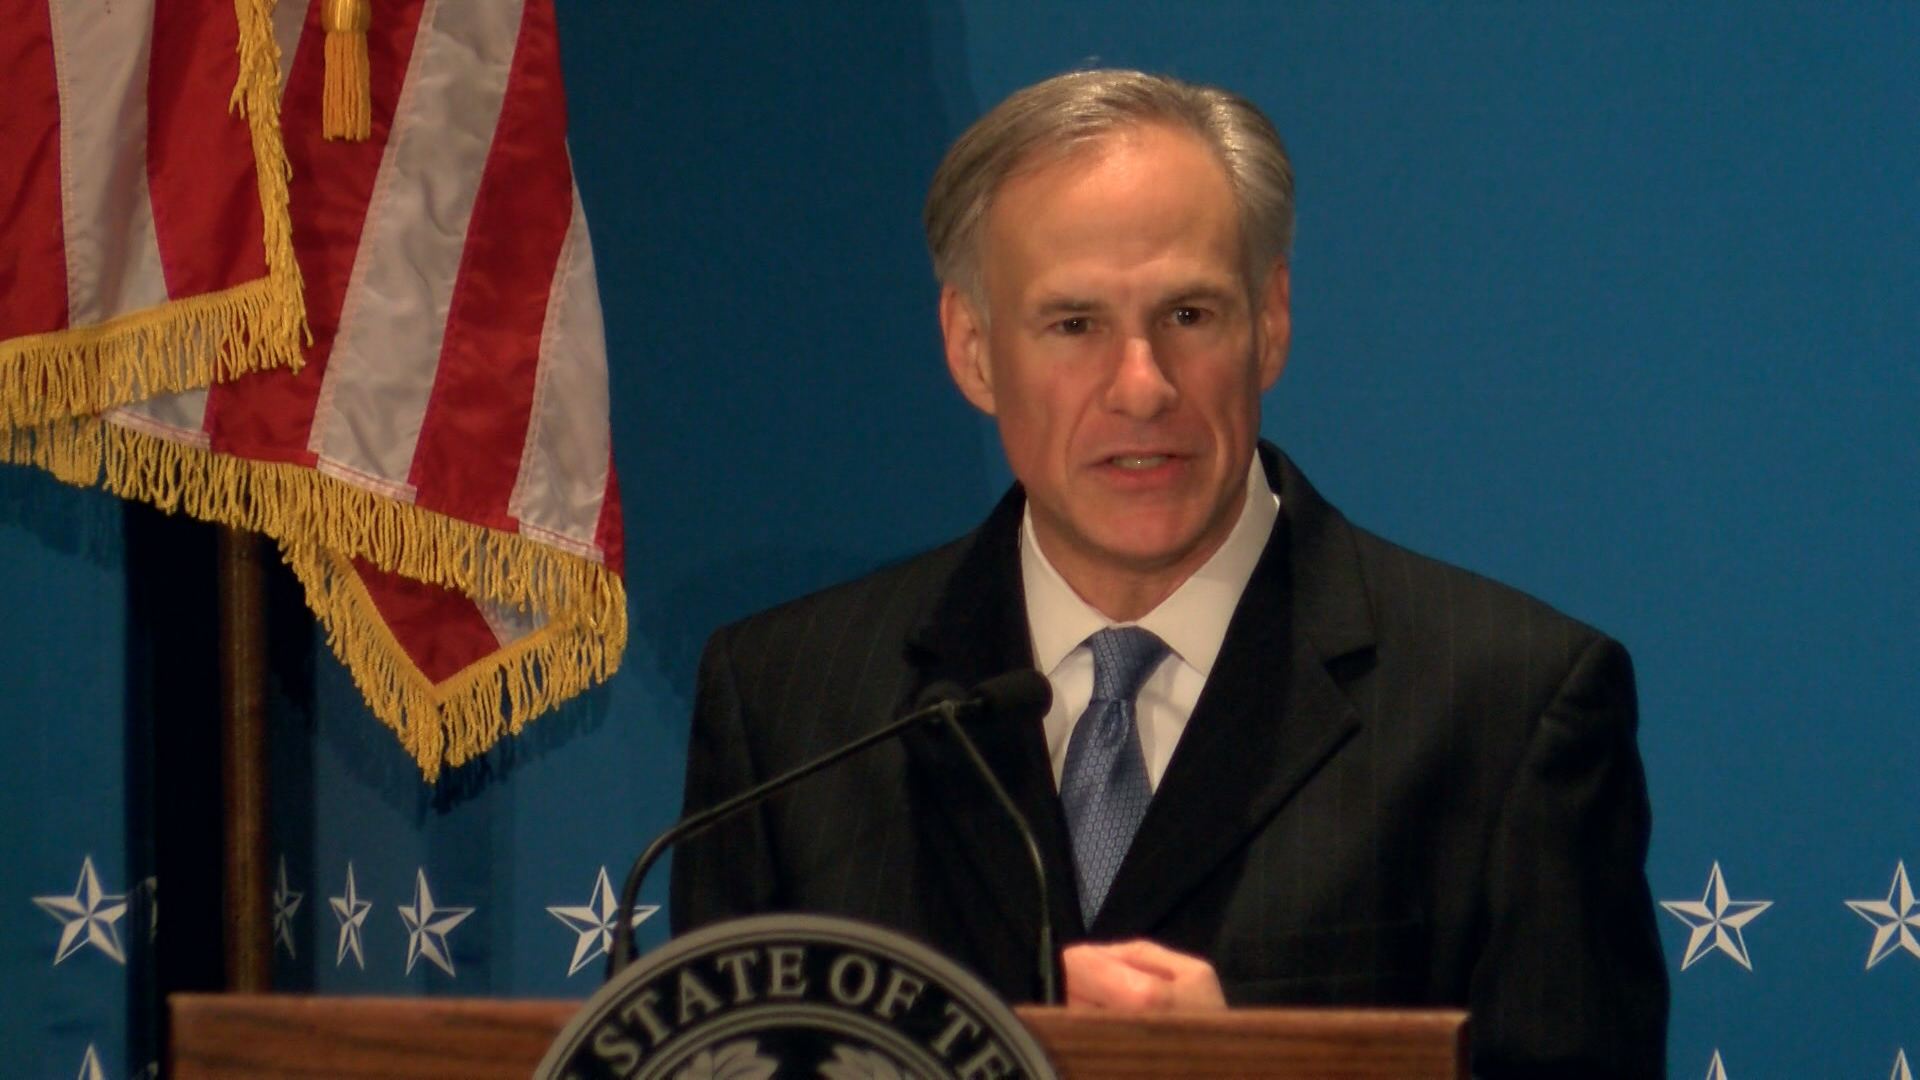 Governor Abbott Web Picture_1452295145470.jpg